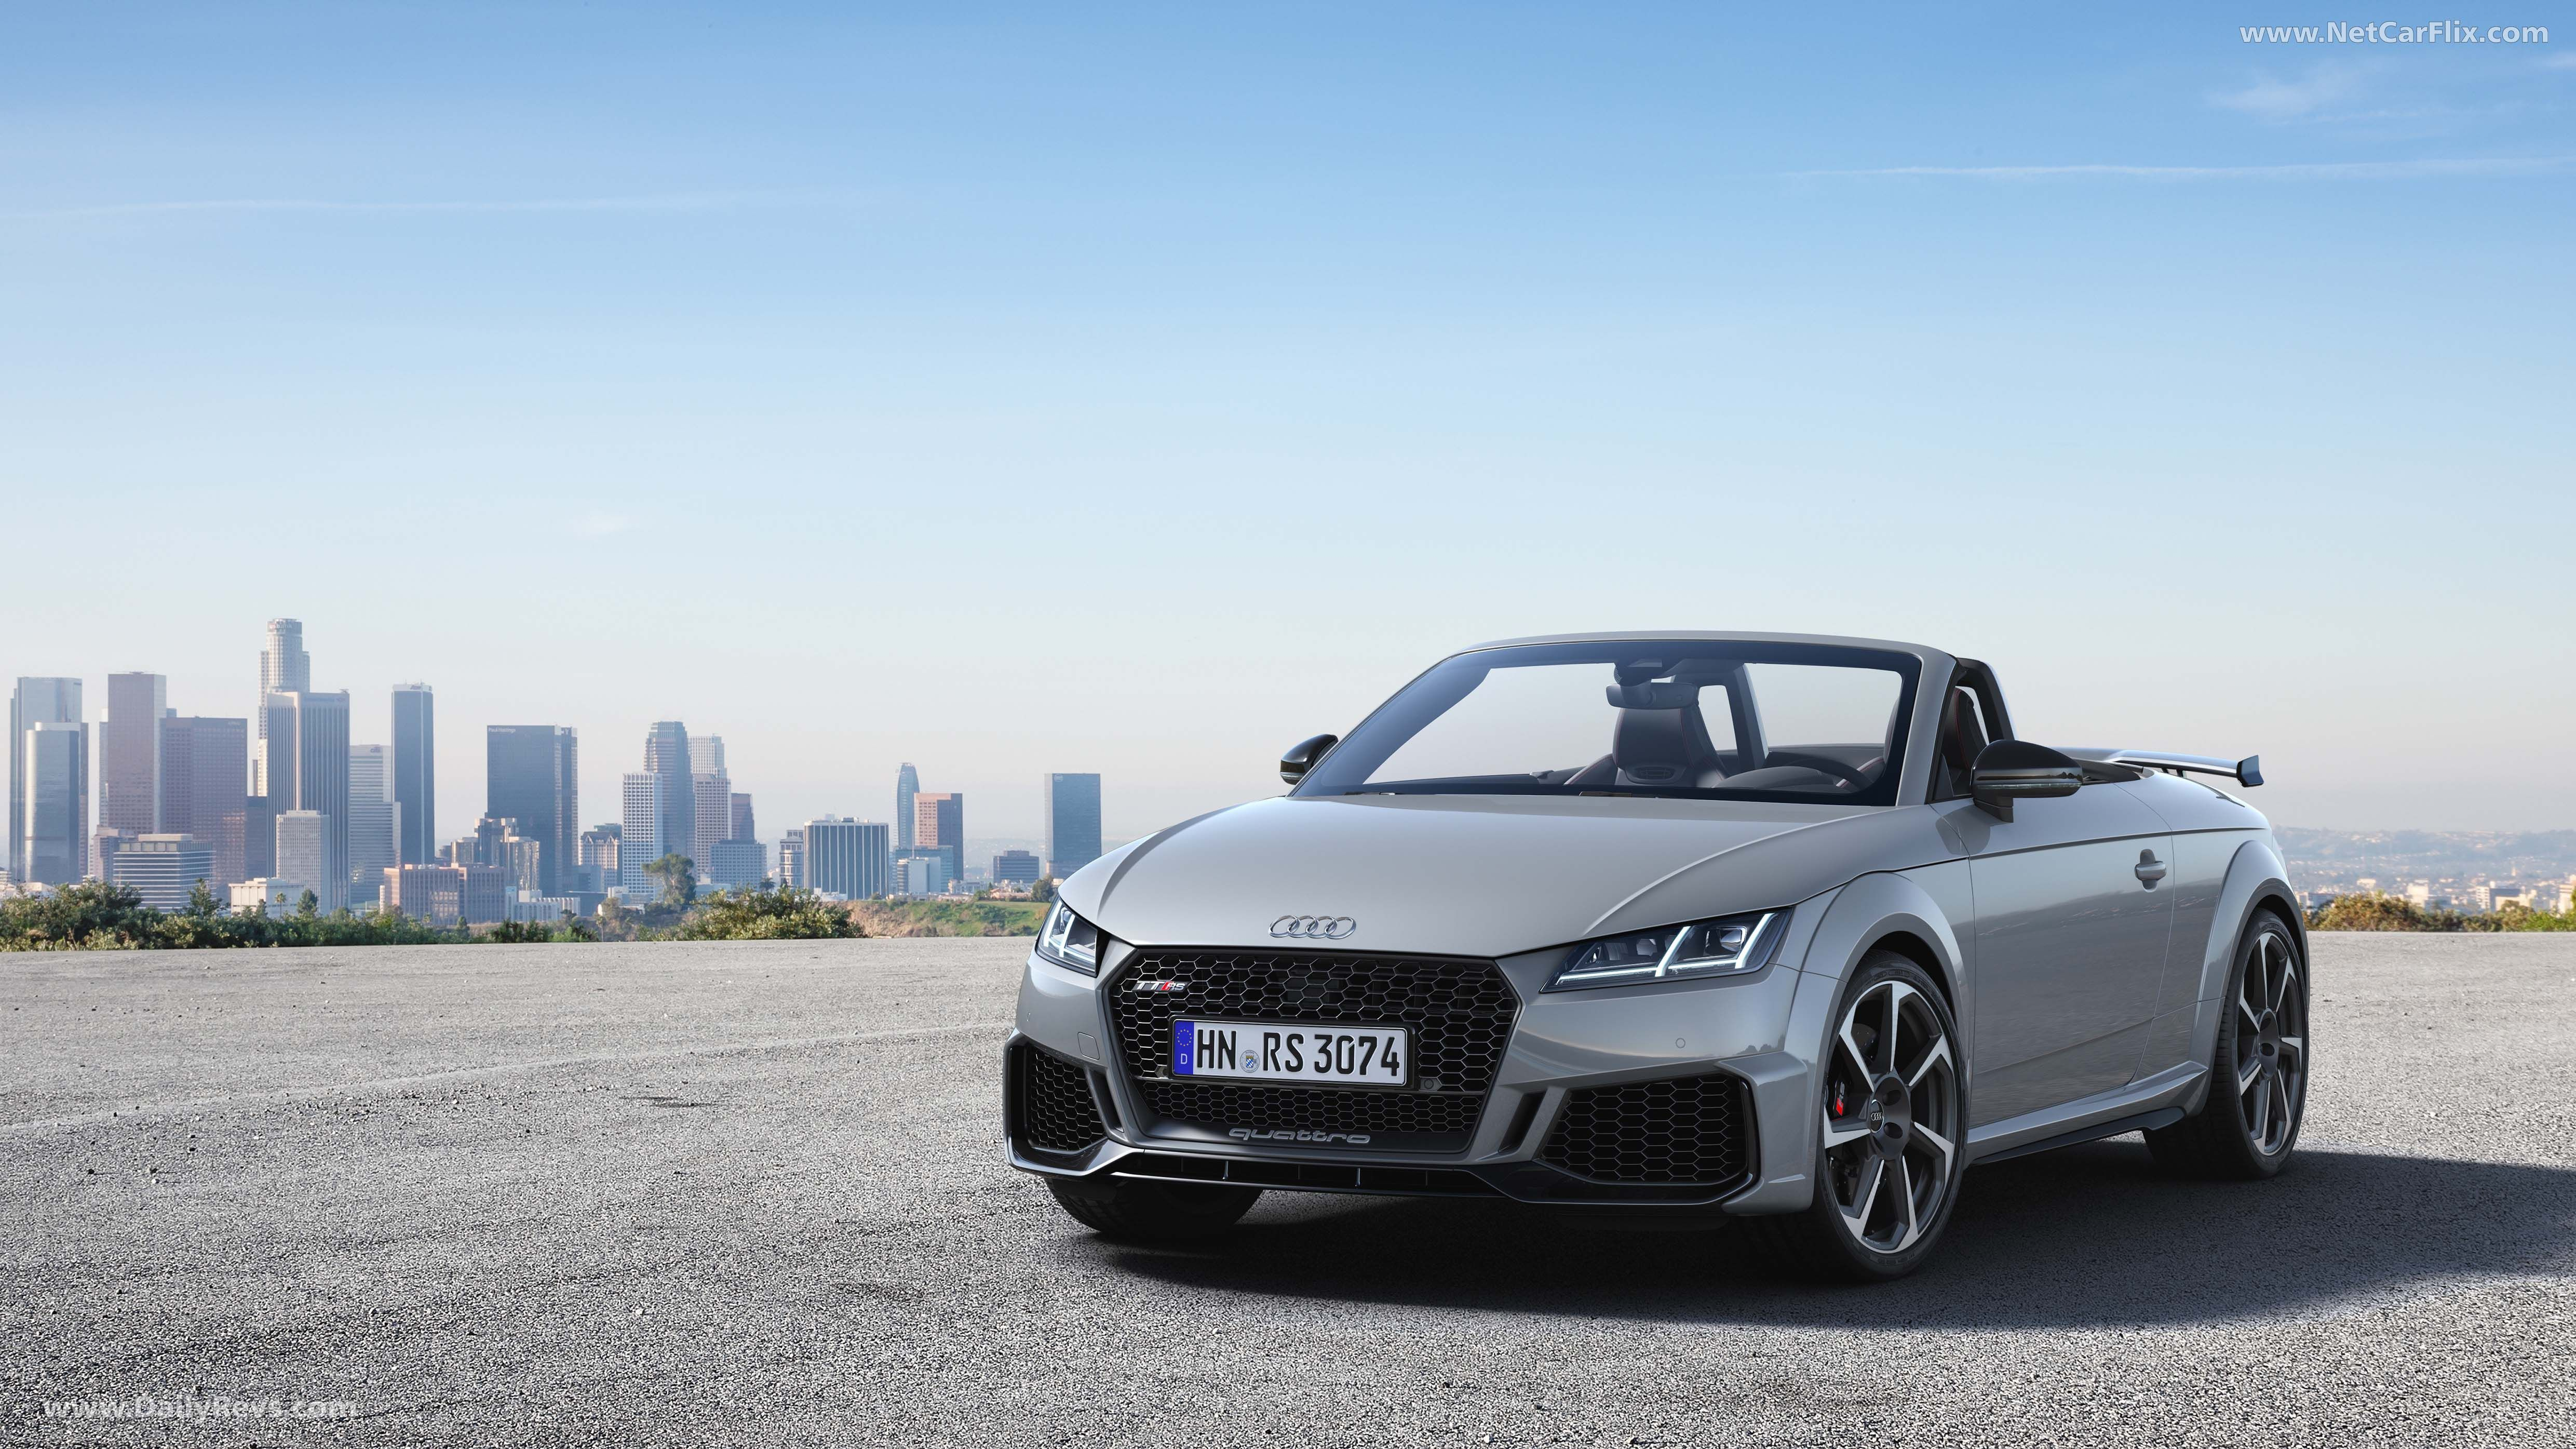 2020 Audi Tt Rs Roadster Hd Pictures Videos Information And Specs Audi Tt Rs Audi Tt Audi Tt Roadster